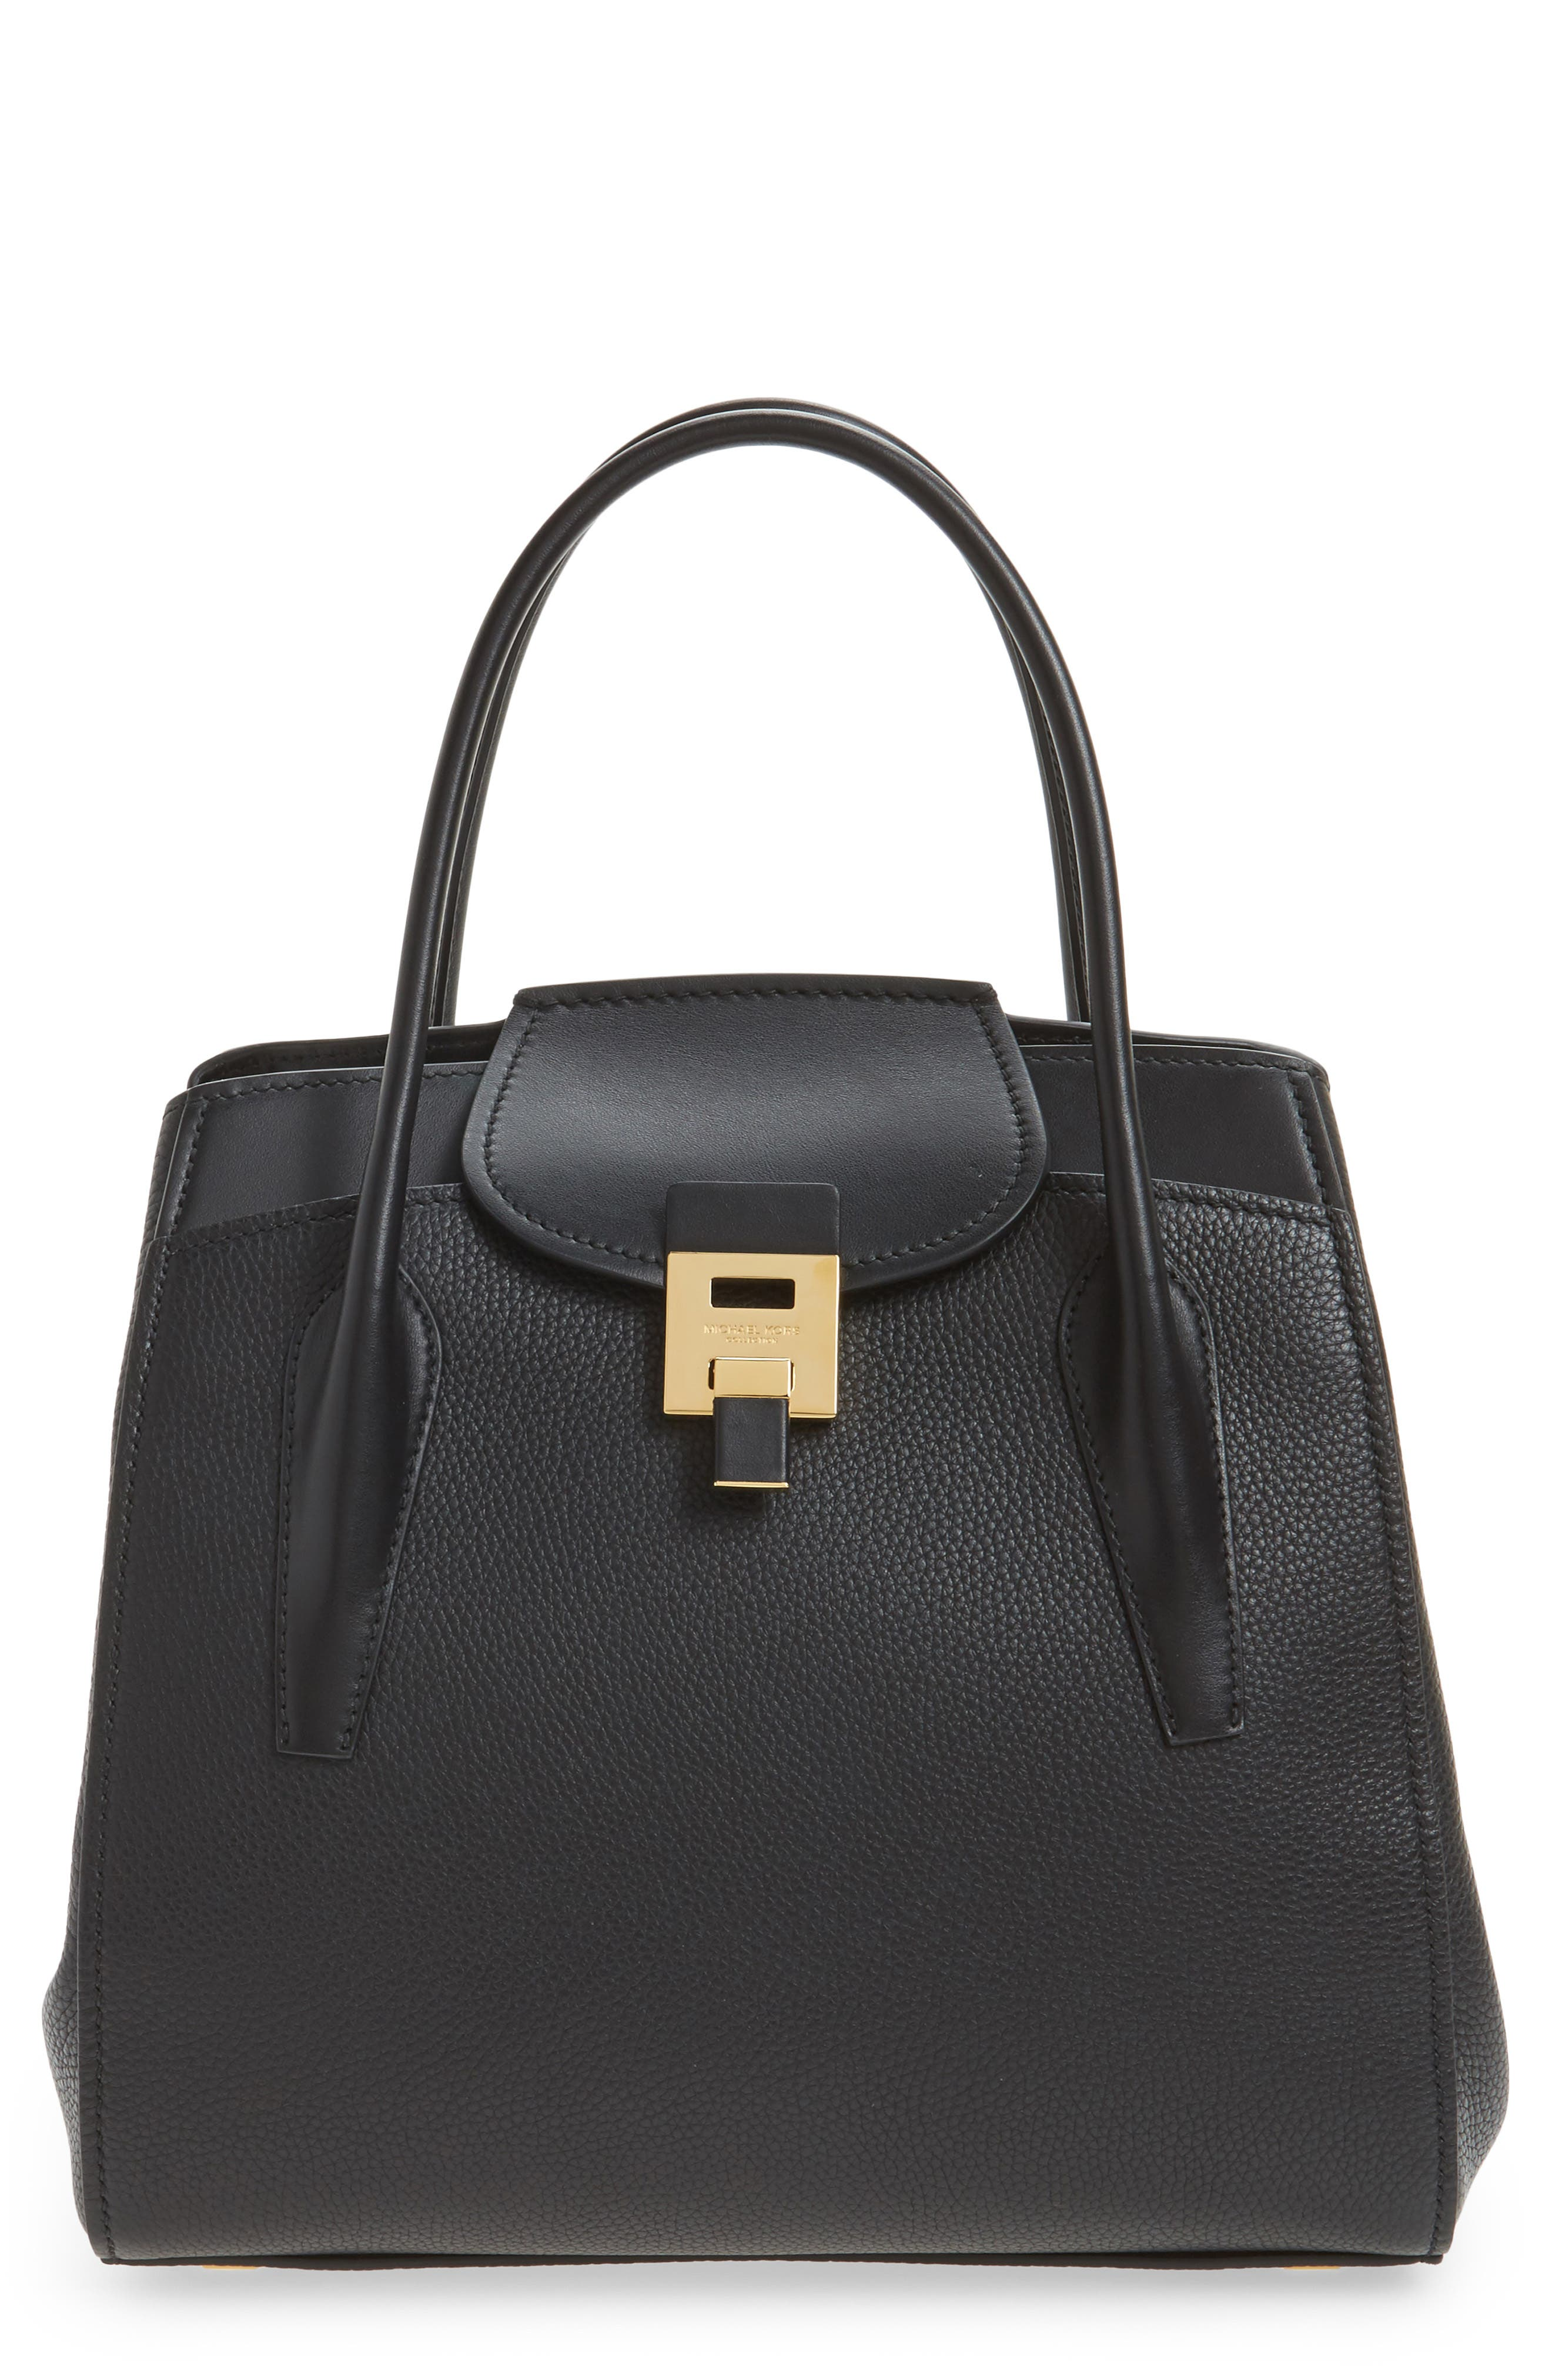 Main Image - Michael Kors Large Bancroft Leather Top Handle Satchel